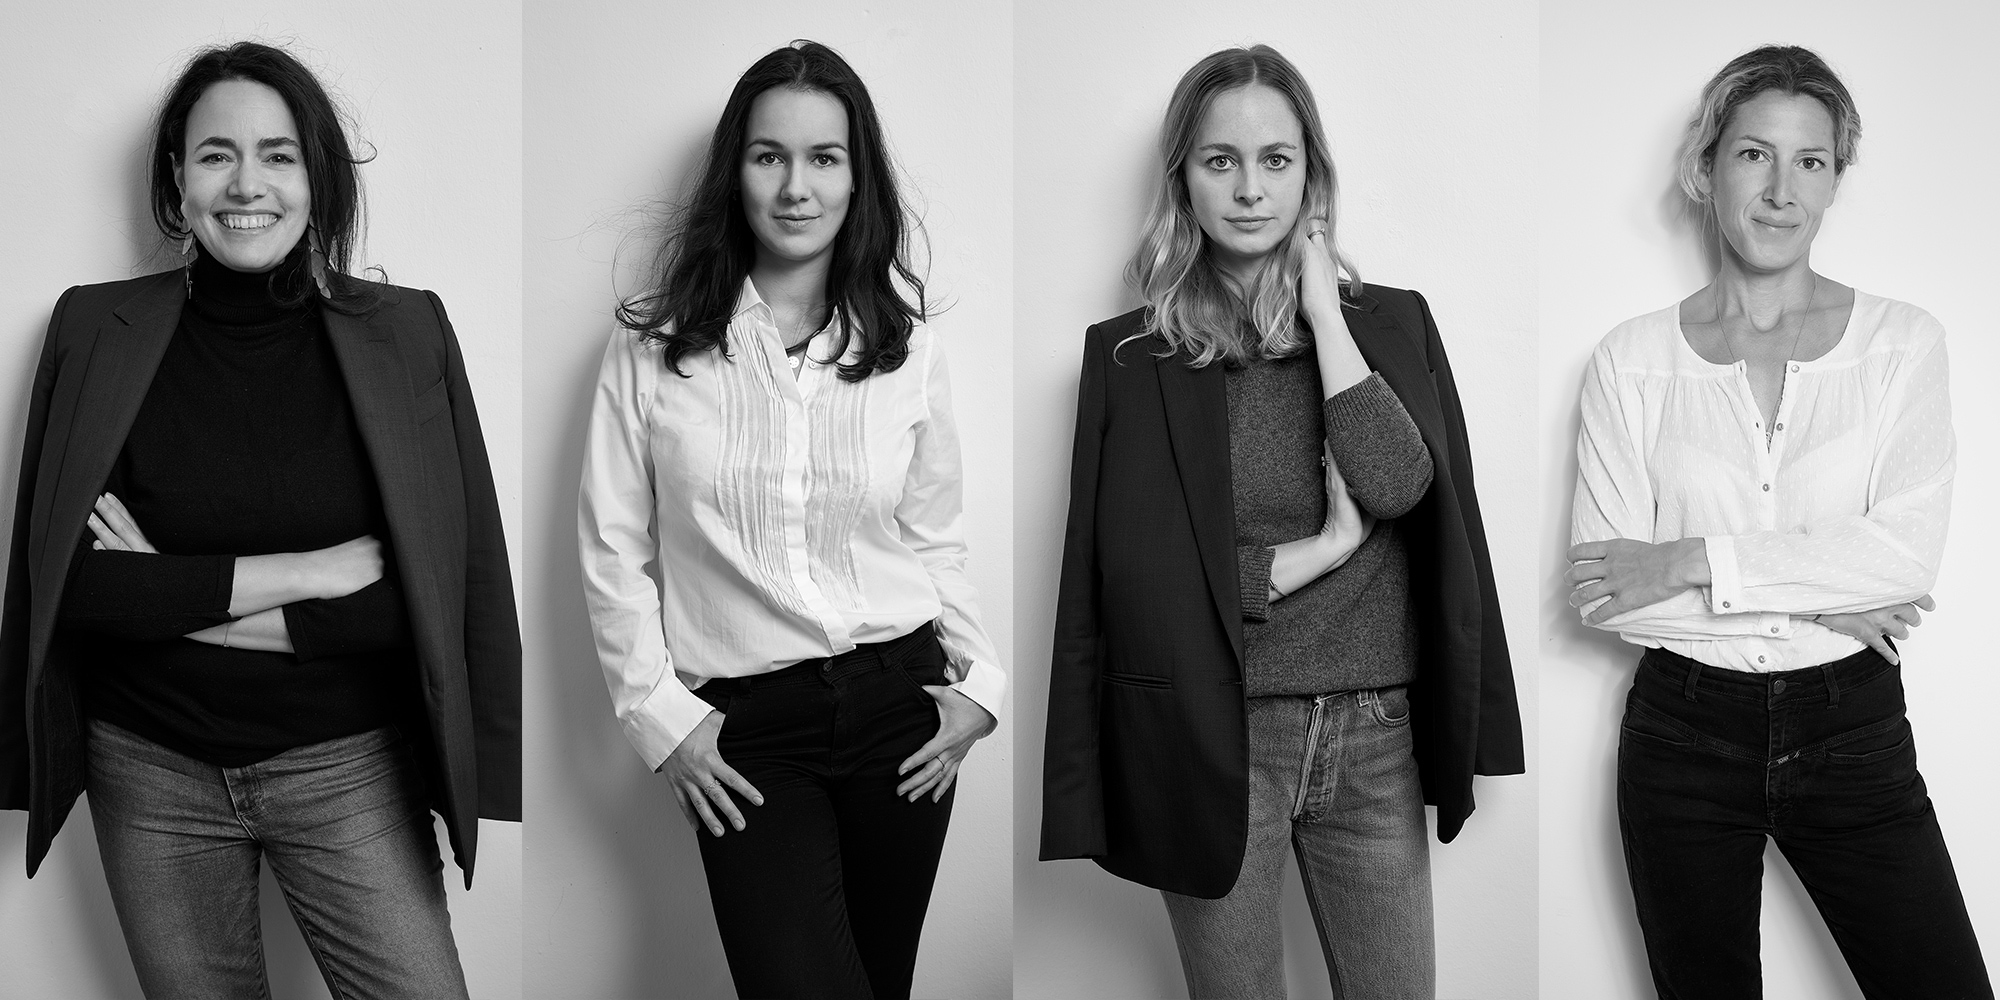 Das Gründerinnenteam hinter the wearness (v.l.n.r.): Julia Zirpel, Guya Merkle, Jennifer Dixon, Karolin Helou